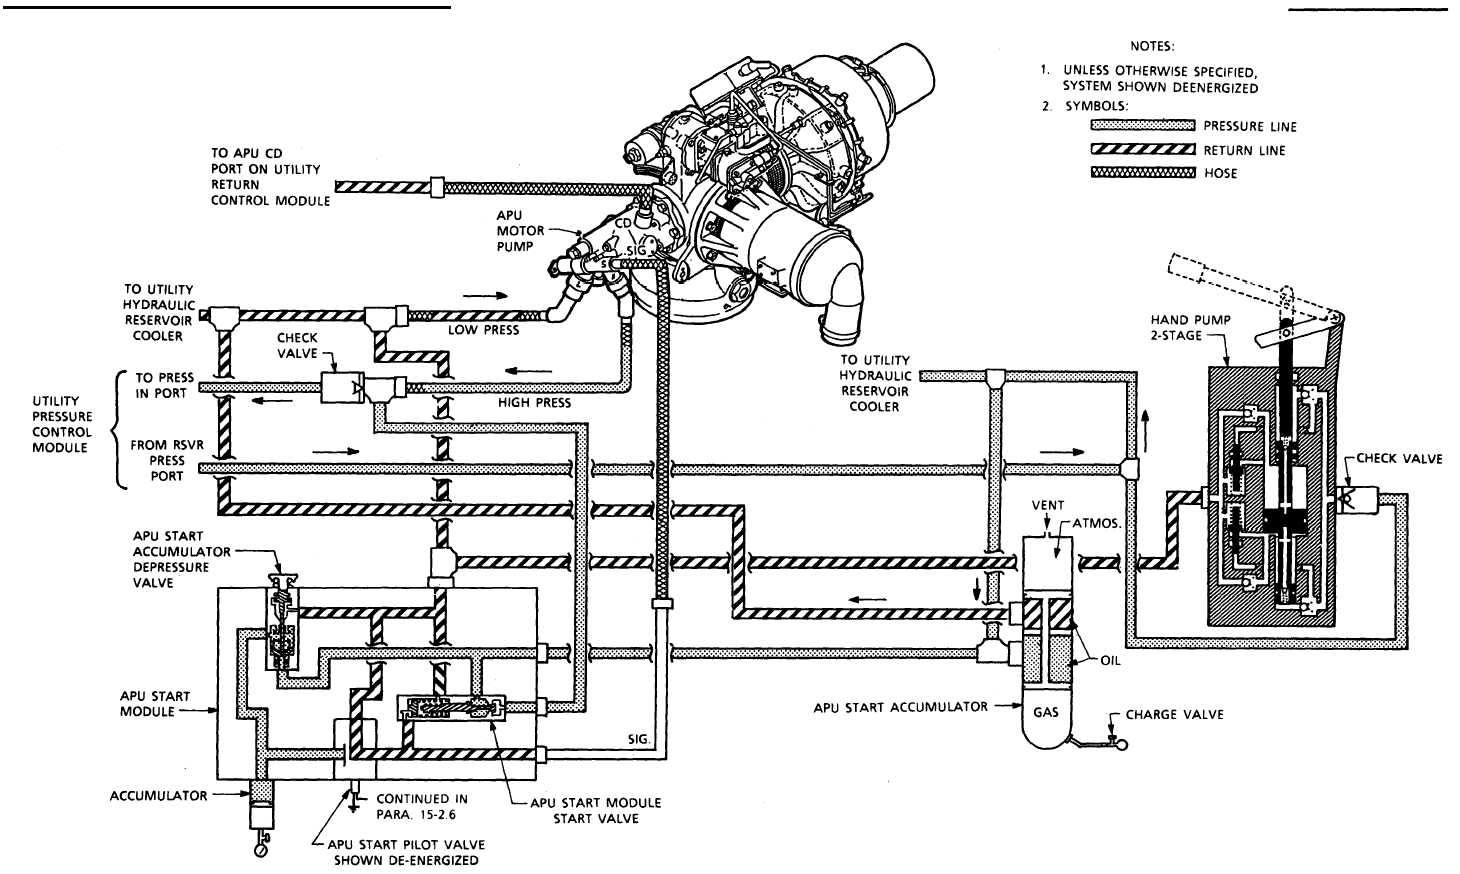 7 Pin Trailer Plug Wiring Diagram For Ford also 7avkp Ford Mustang Gt 92 Mustang Will Not Start Getting Fire likewise Dayton Electric Winch Wiring Diagram besides Question 107724 together with Wiring Diagram For 2002 Grizzly. on trailer wiring diagram